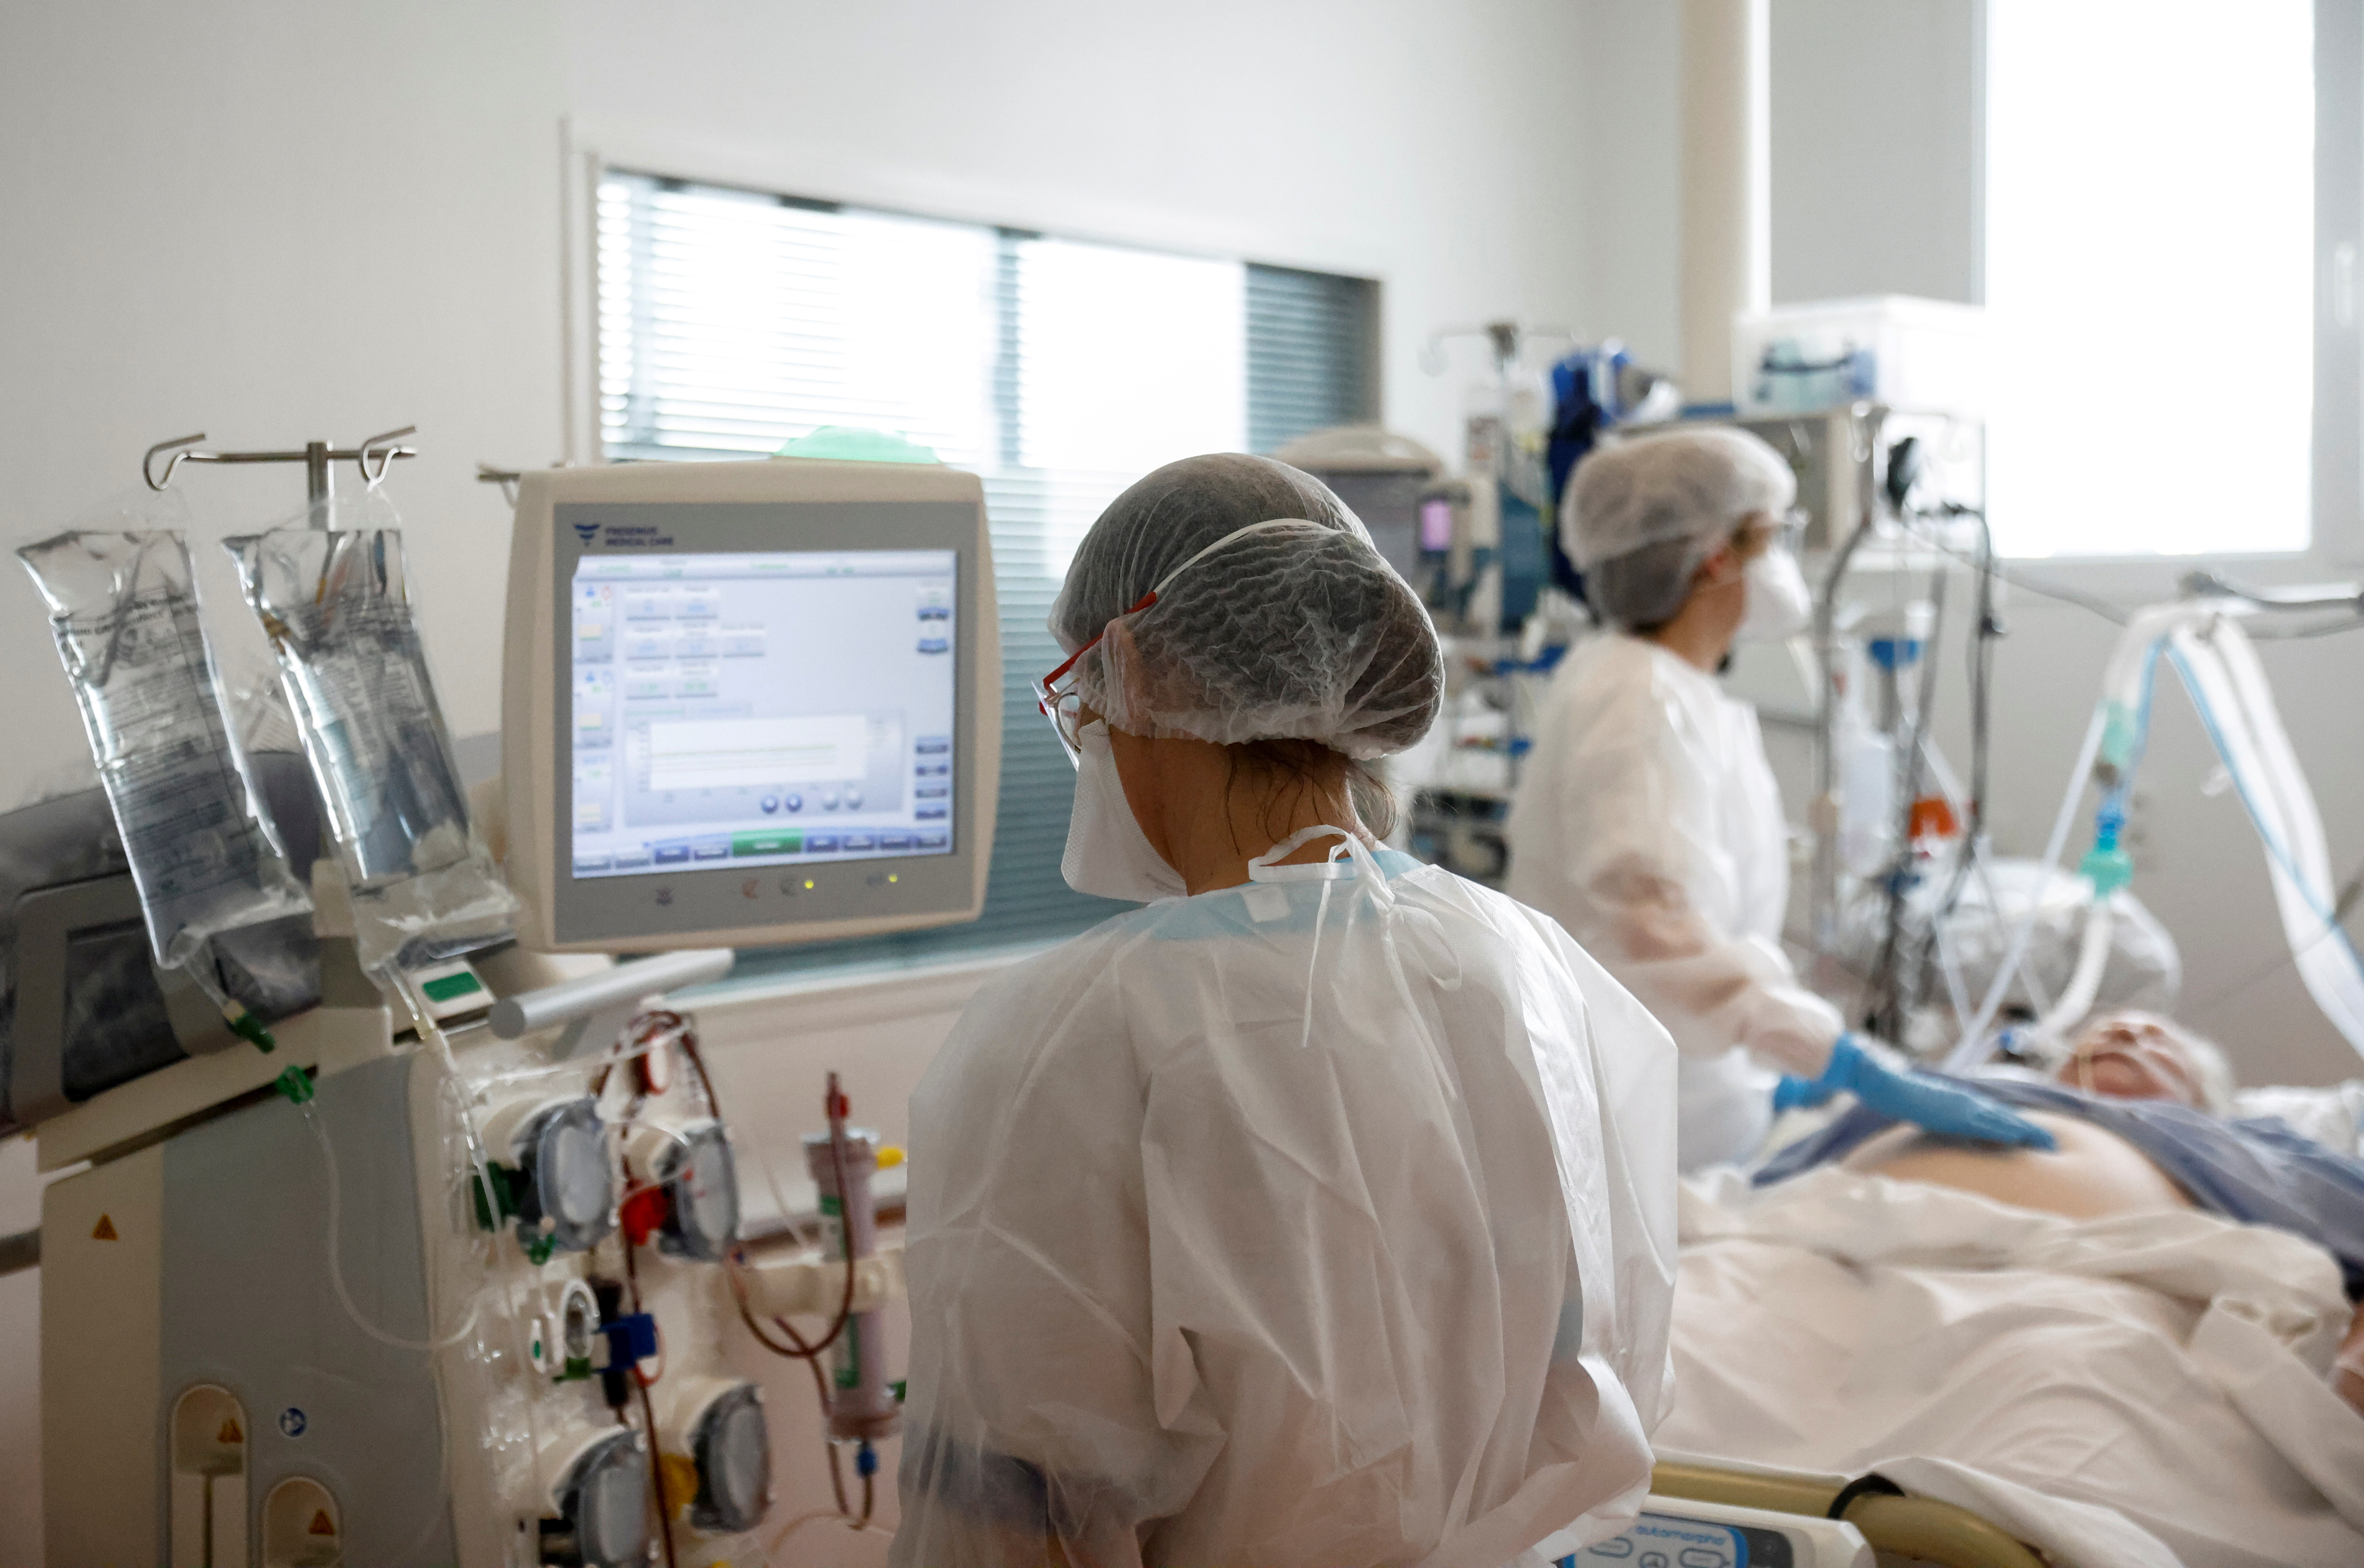 Medical staff members work in the Intensive Care Unit (ICU) where patients suffering from the coronavirus disease (COVID-19) are treated at ELSAN's private hospital Clinique Oceane in Vannes, France, April 7, 2021. REUTERS/Stephane Mahe/File Photo